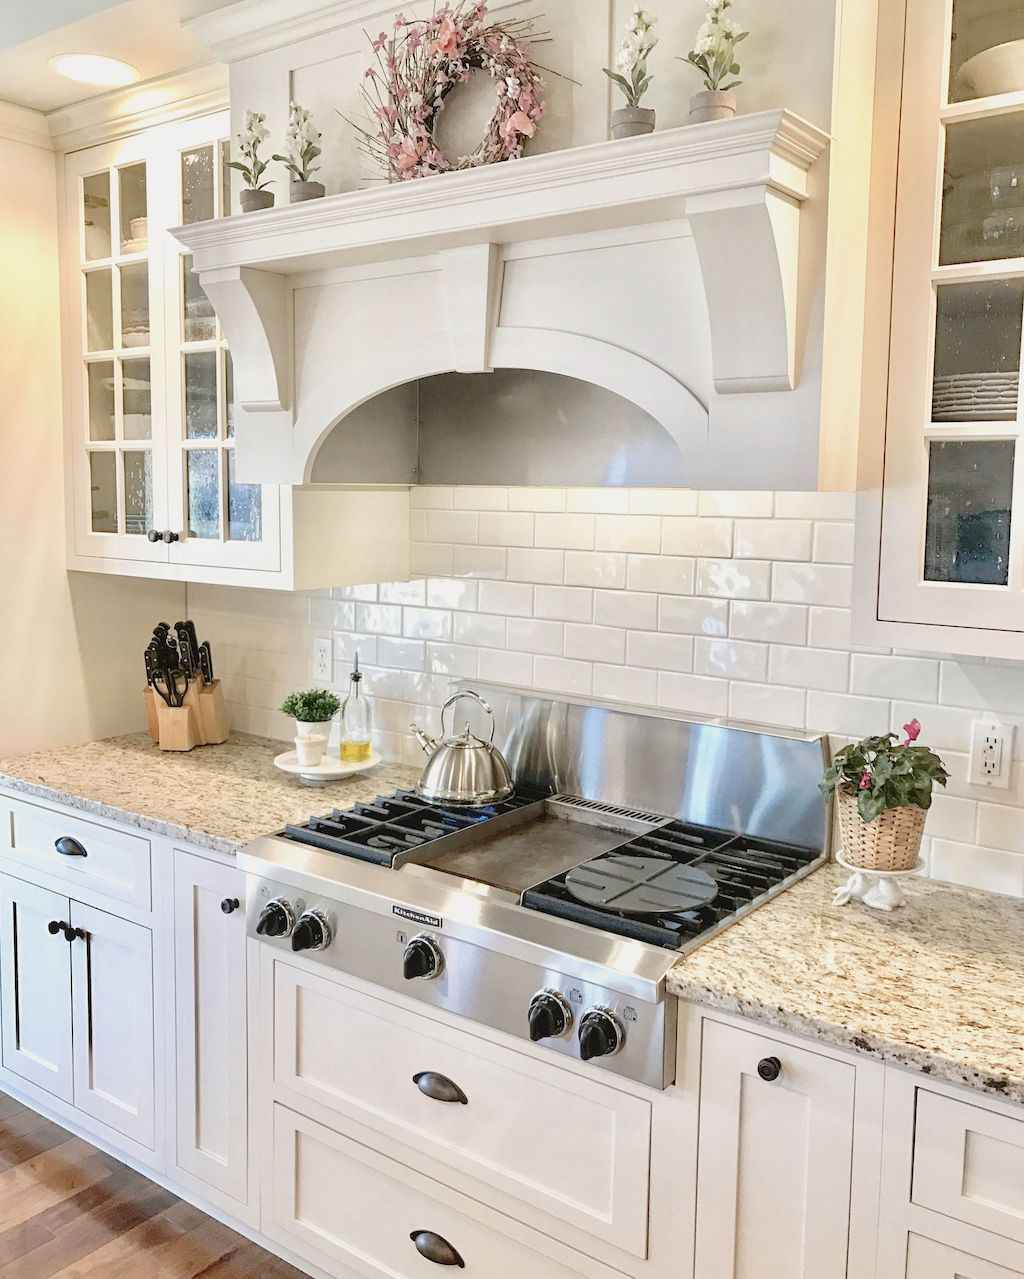 Best 100 White Kitchen Cabinets Decor Ideas For Farmhouse Style Design (6)